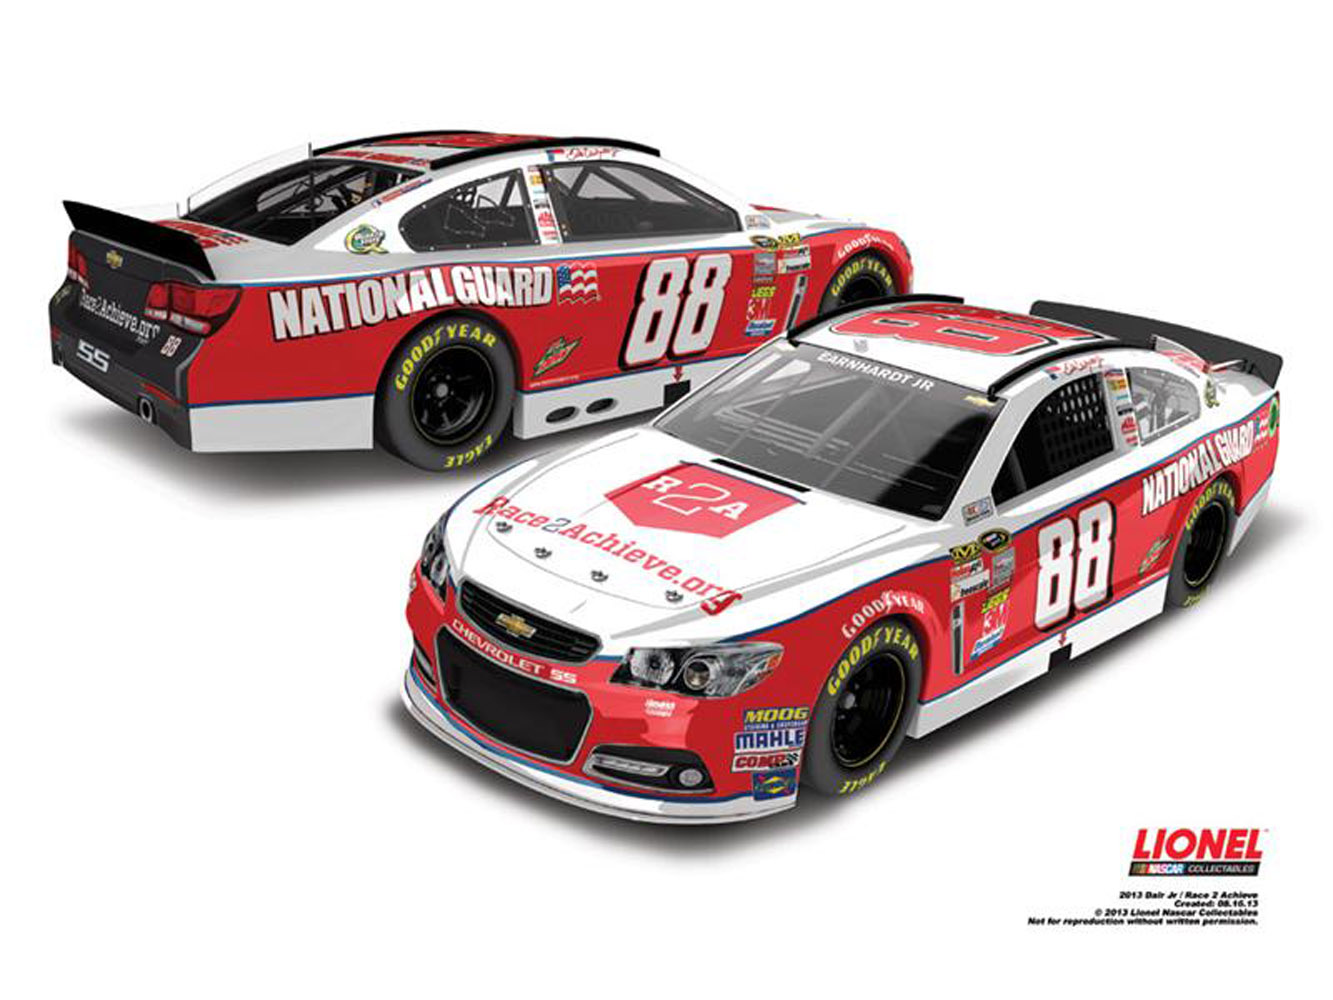 2013 Dale Earnhardt Jr #88 NG / Race2Achieve 1/24 Diecast Car